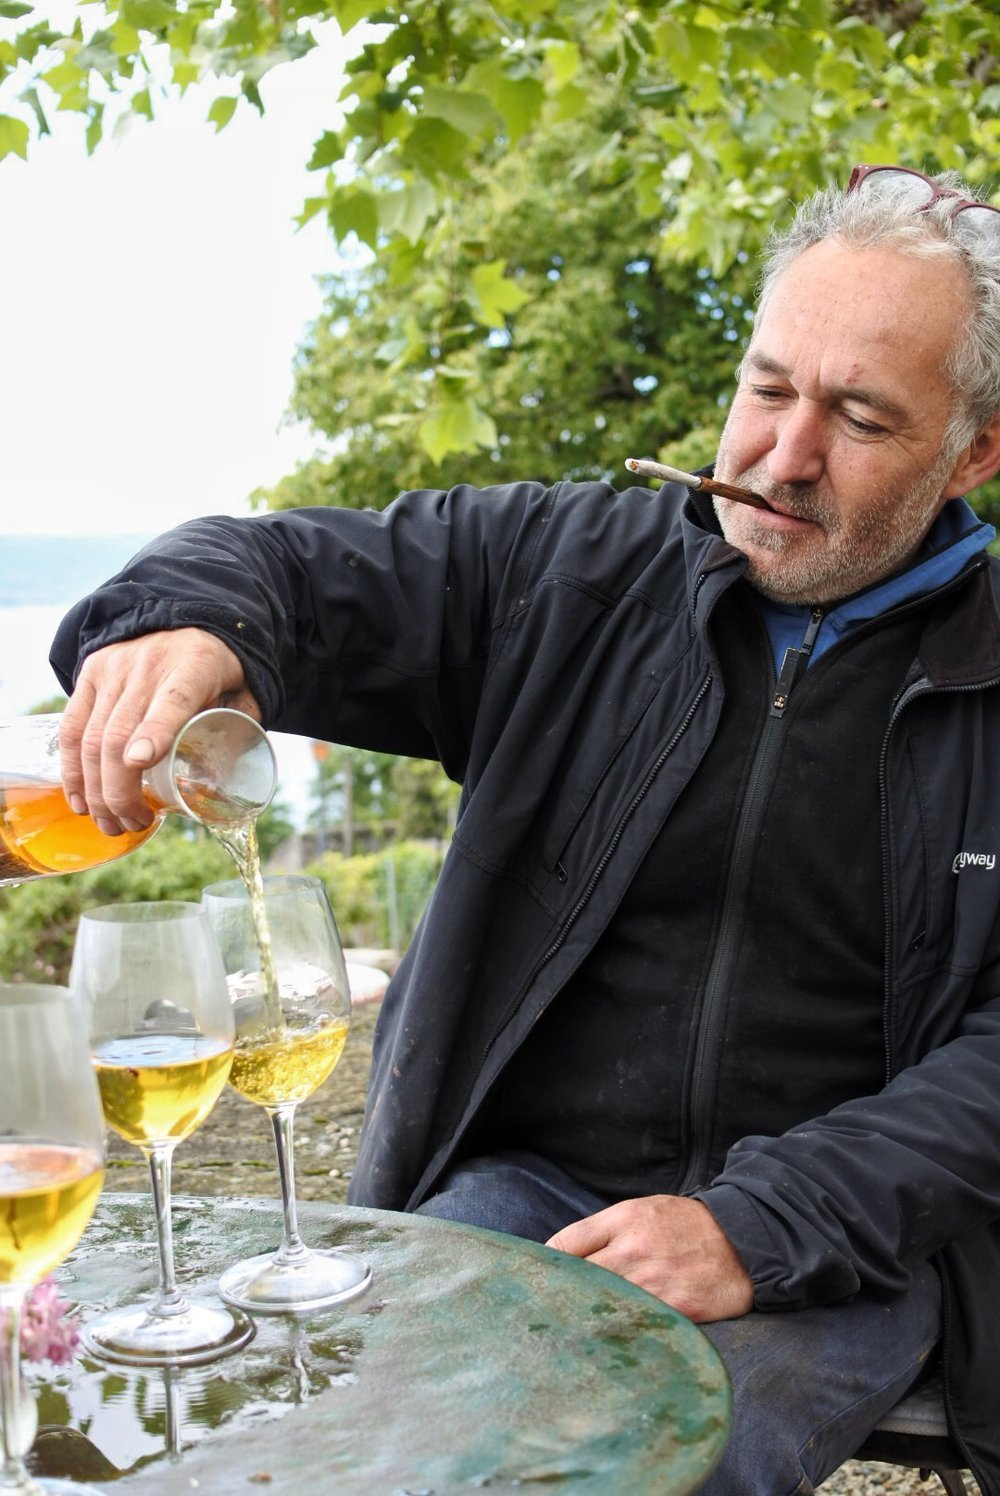 Gilles, happily pouring some vine tea while puffing on dried vine leaves